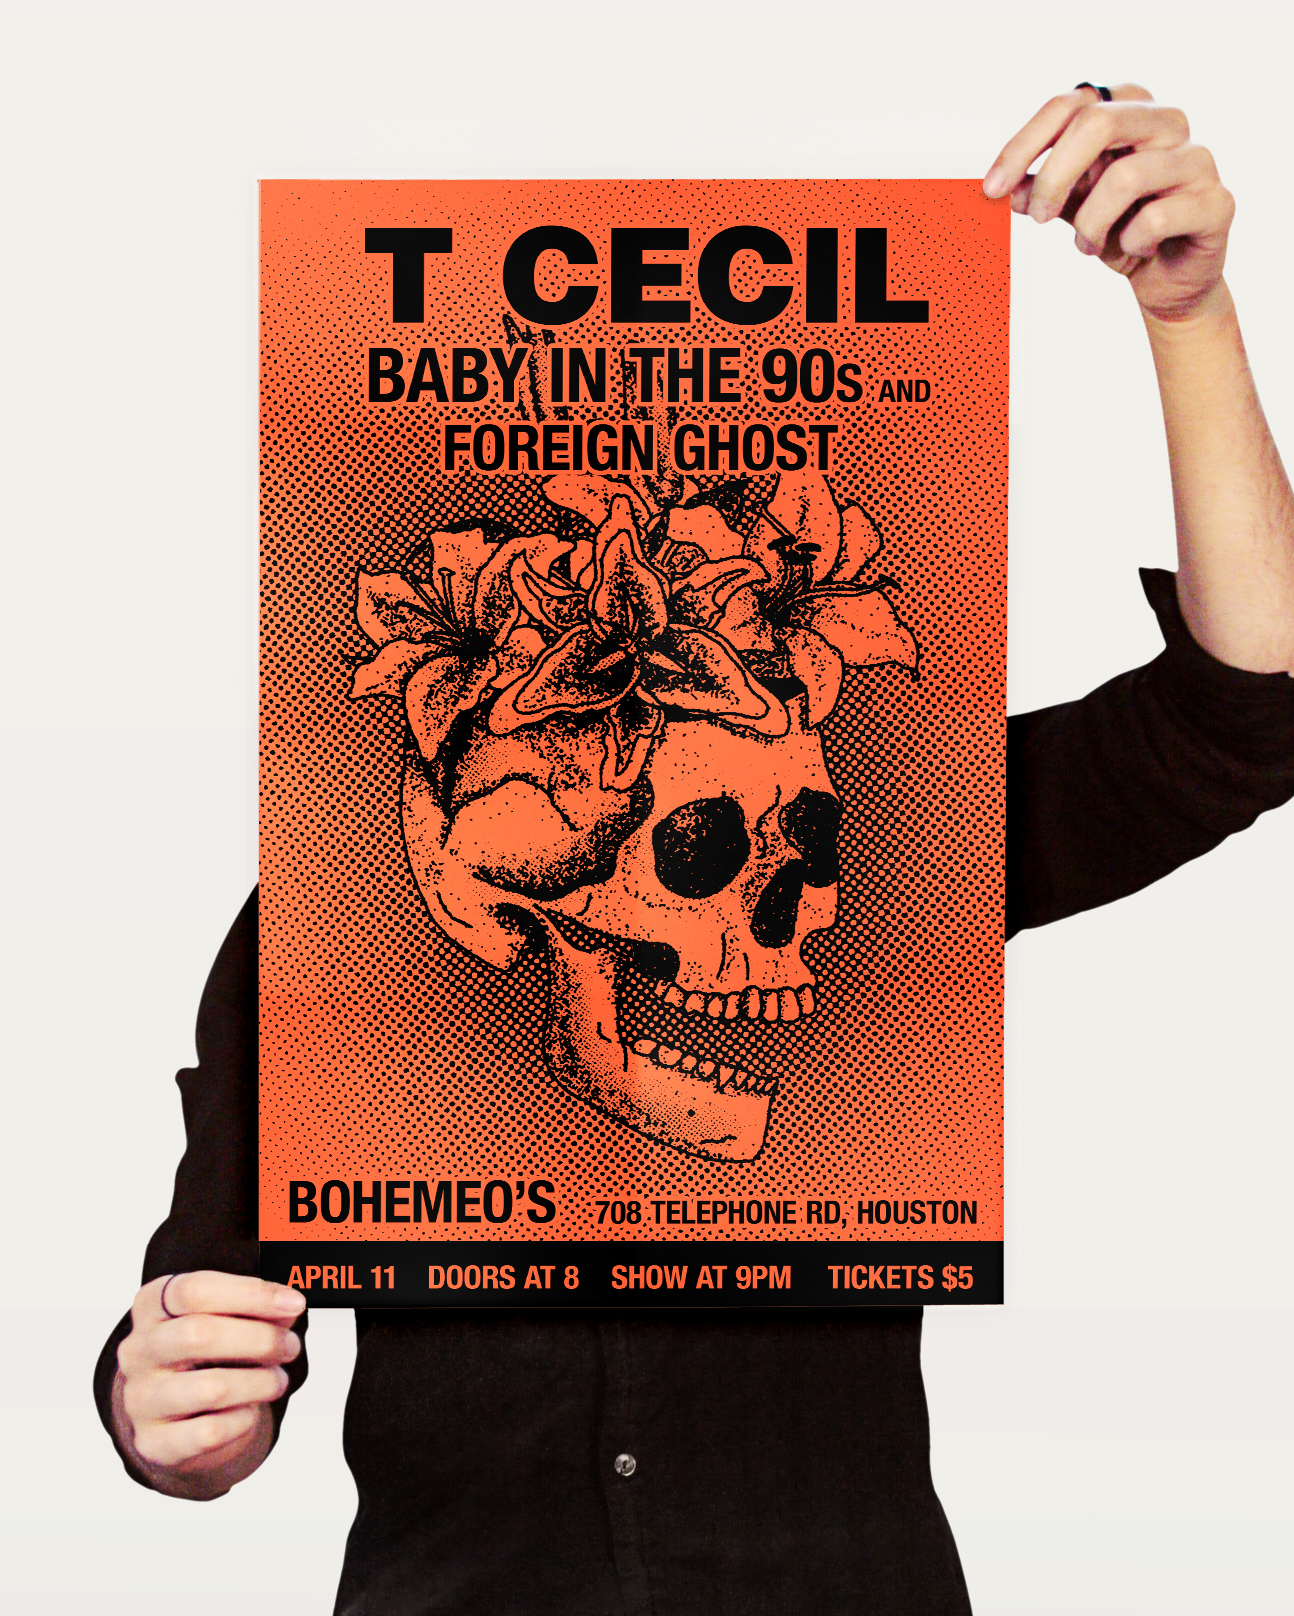 TCecil_Poster.jpg